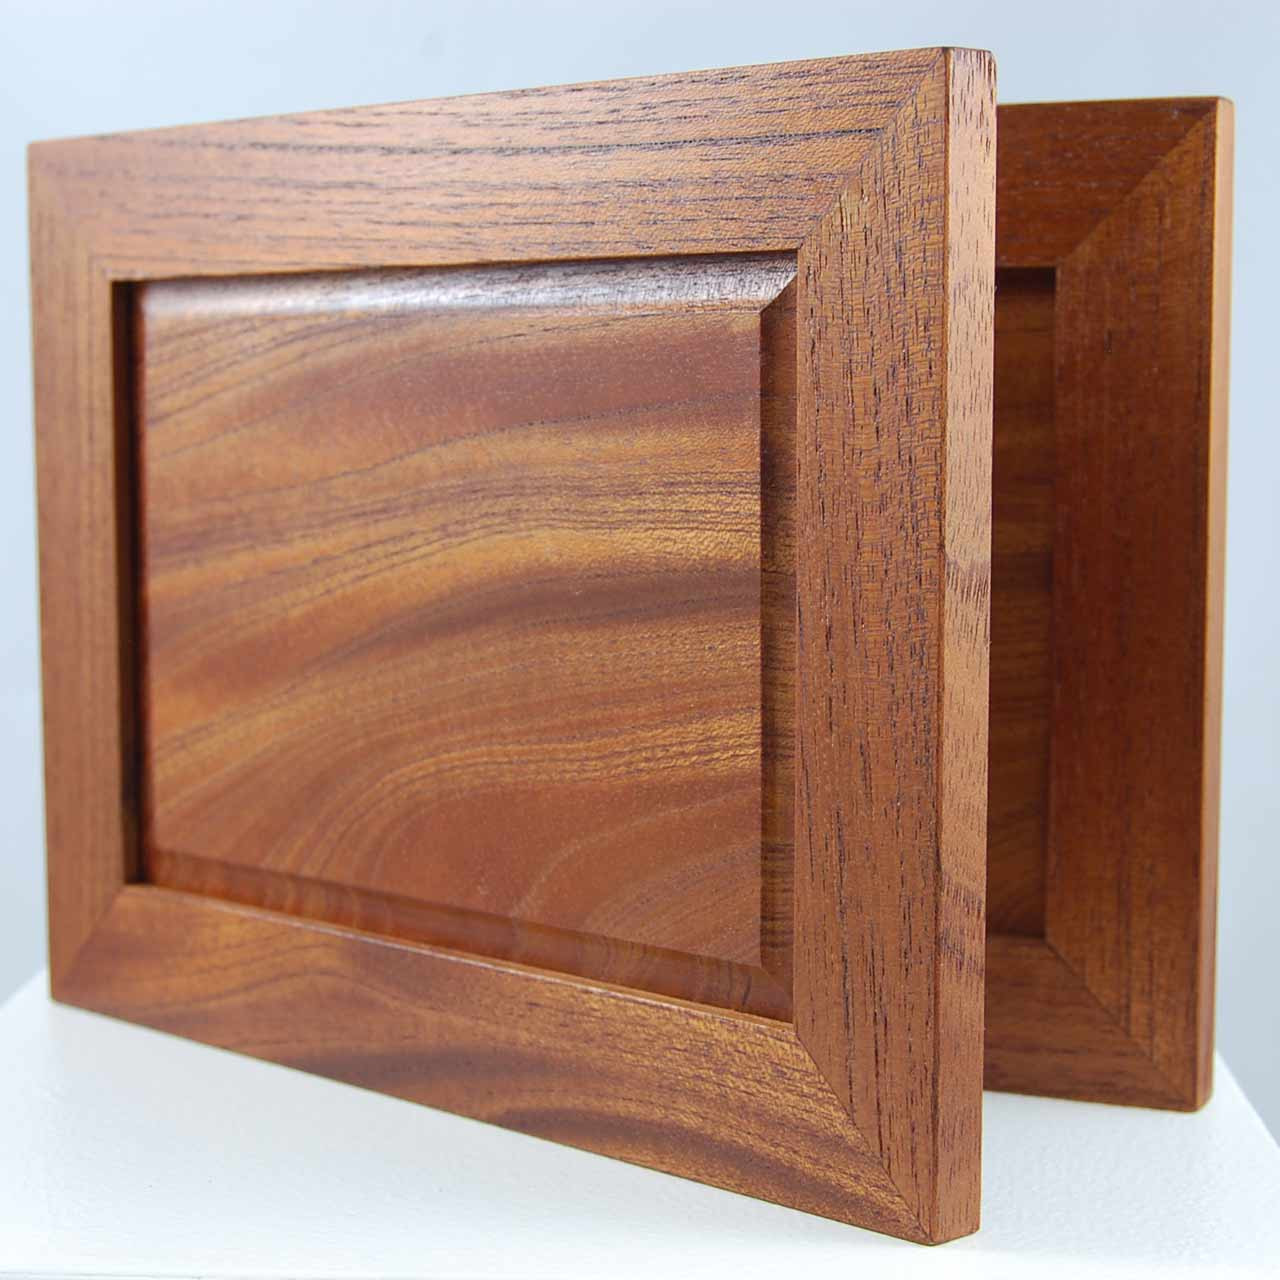 Silver Photo Frames Australia Australian Red Cedar Timber Photo Frame Wooden Picture Frame